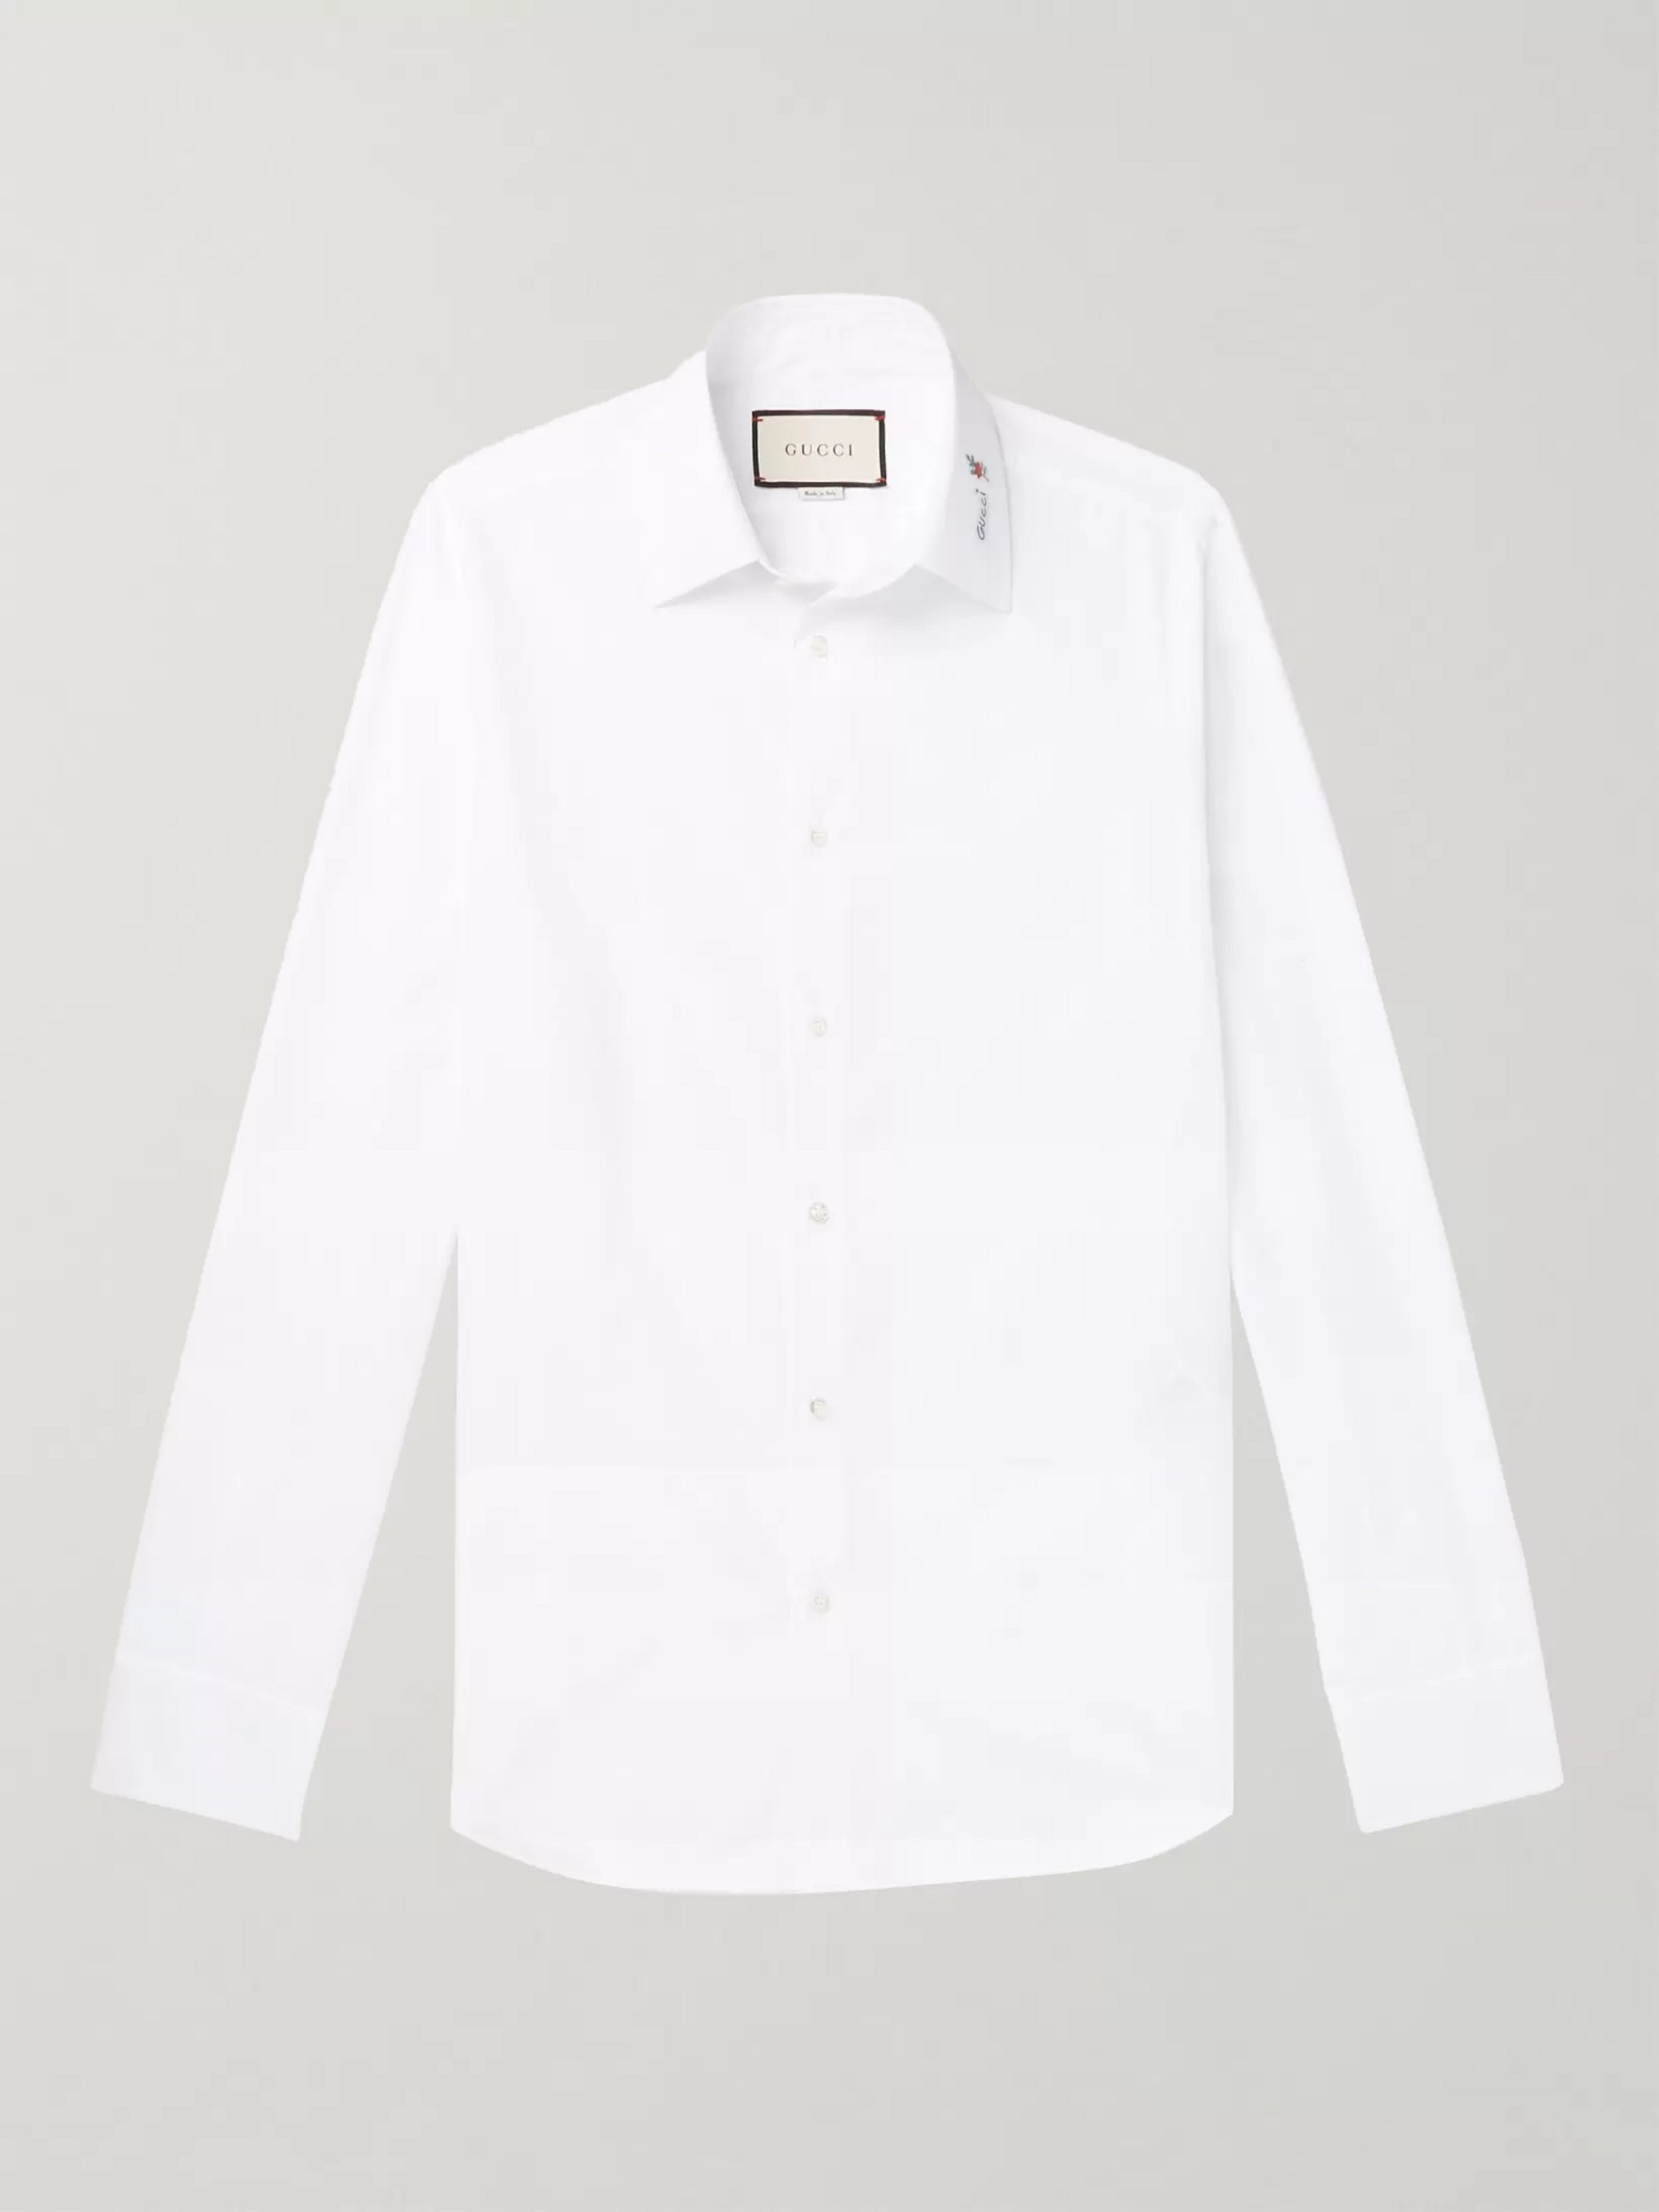 Gucci Slim-Fit Logo-Detailed Cotton Shirt